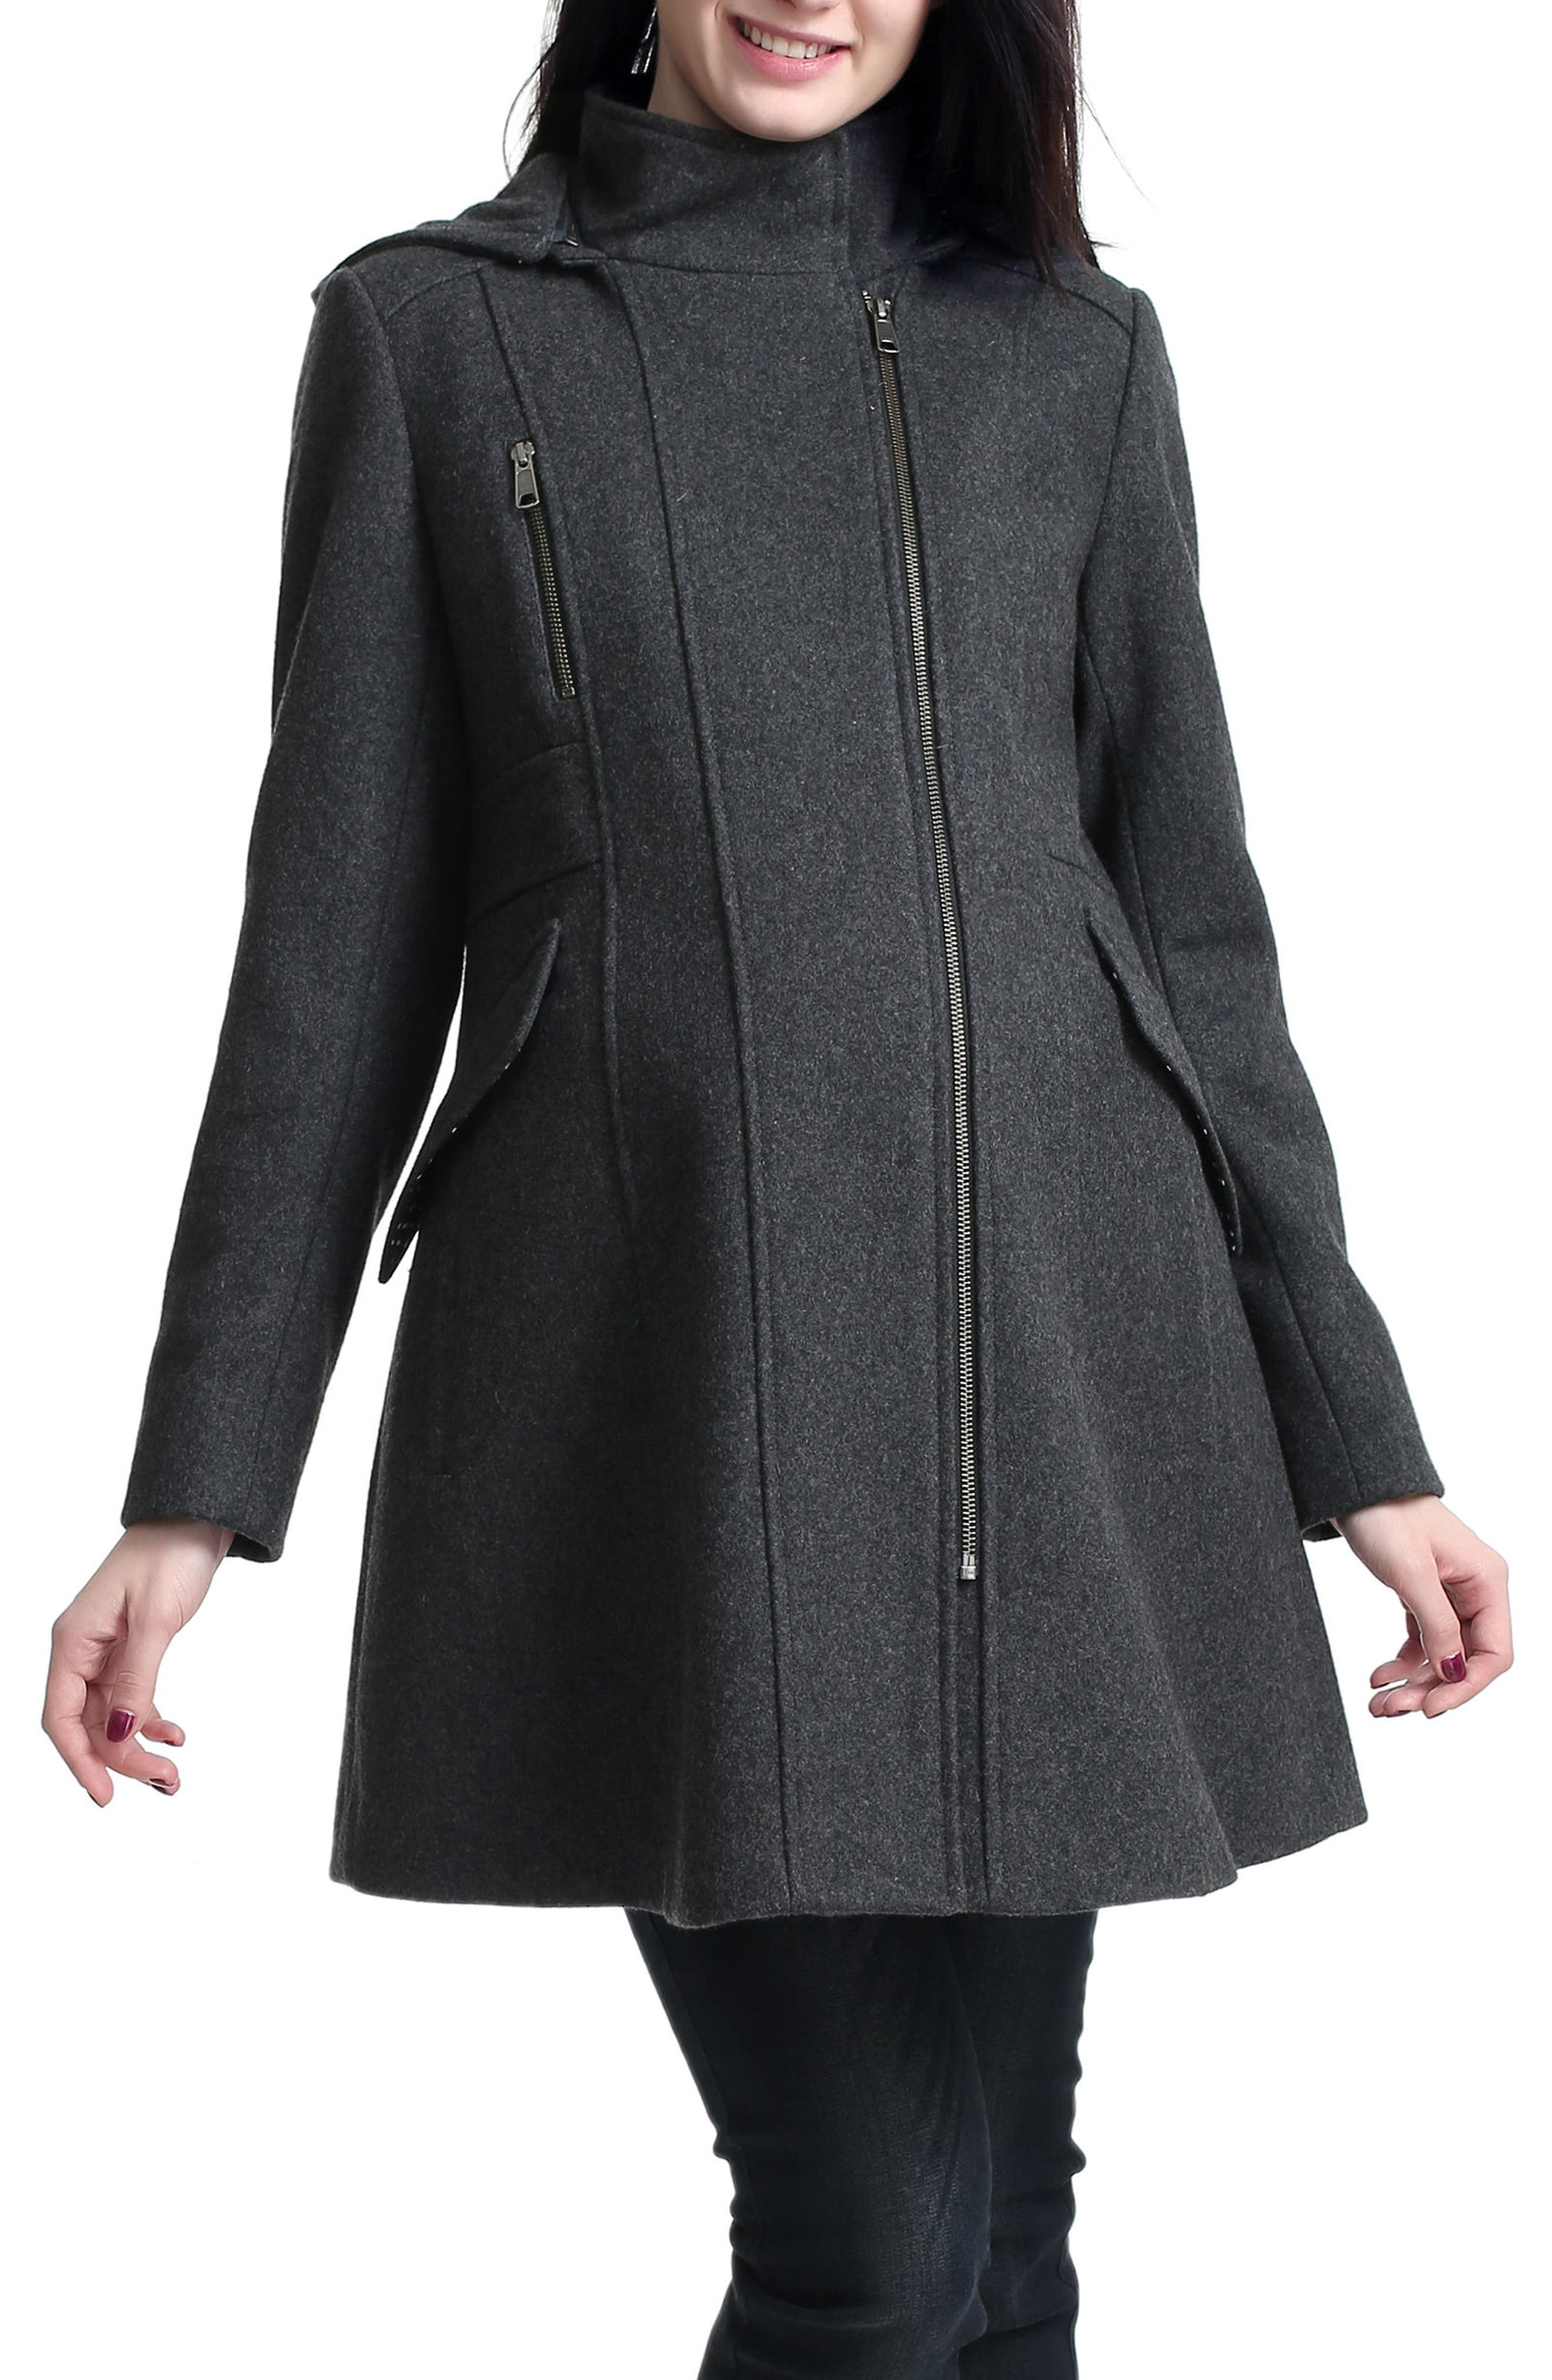 Cordella Wool Blend Hooded Maternity Coat,                             Main thumbnail 1, color,                             DARK HEATHER GRAY